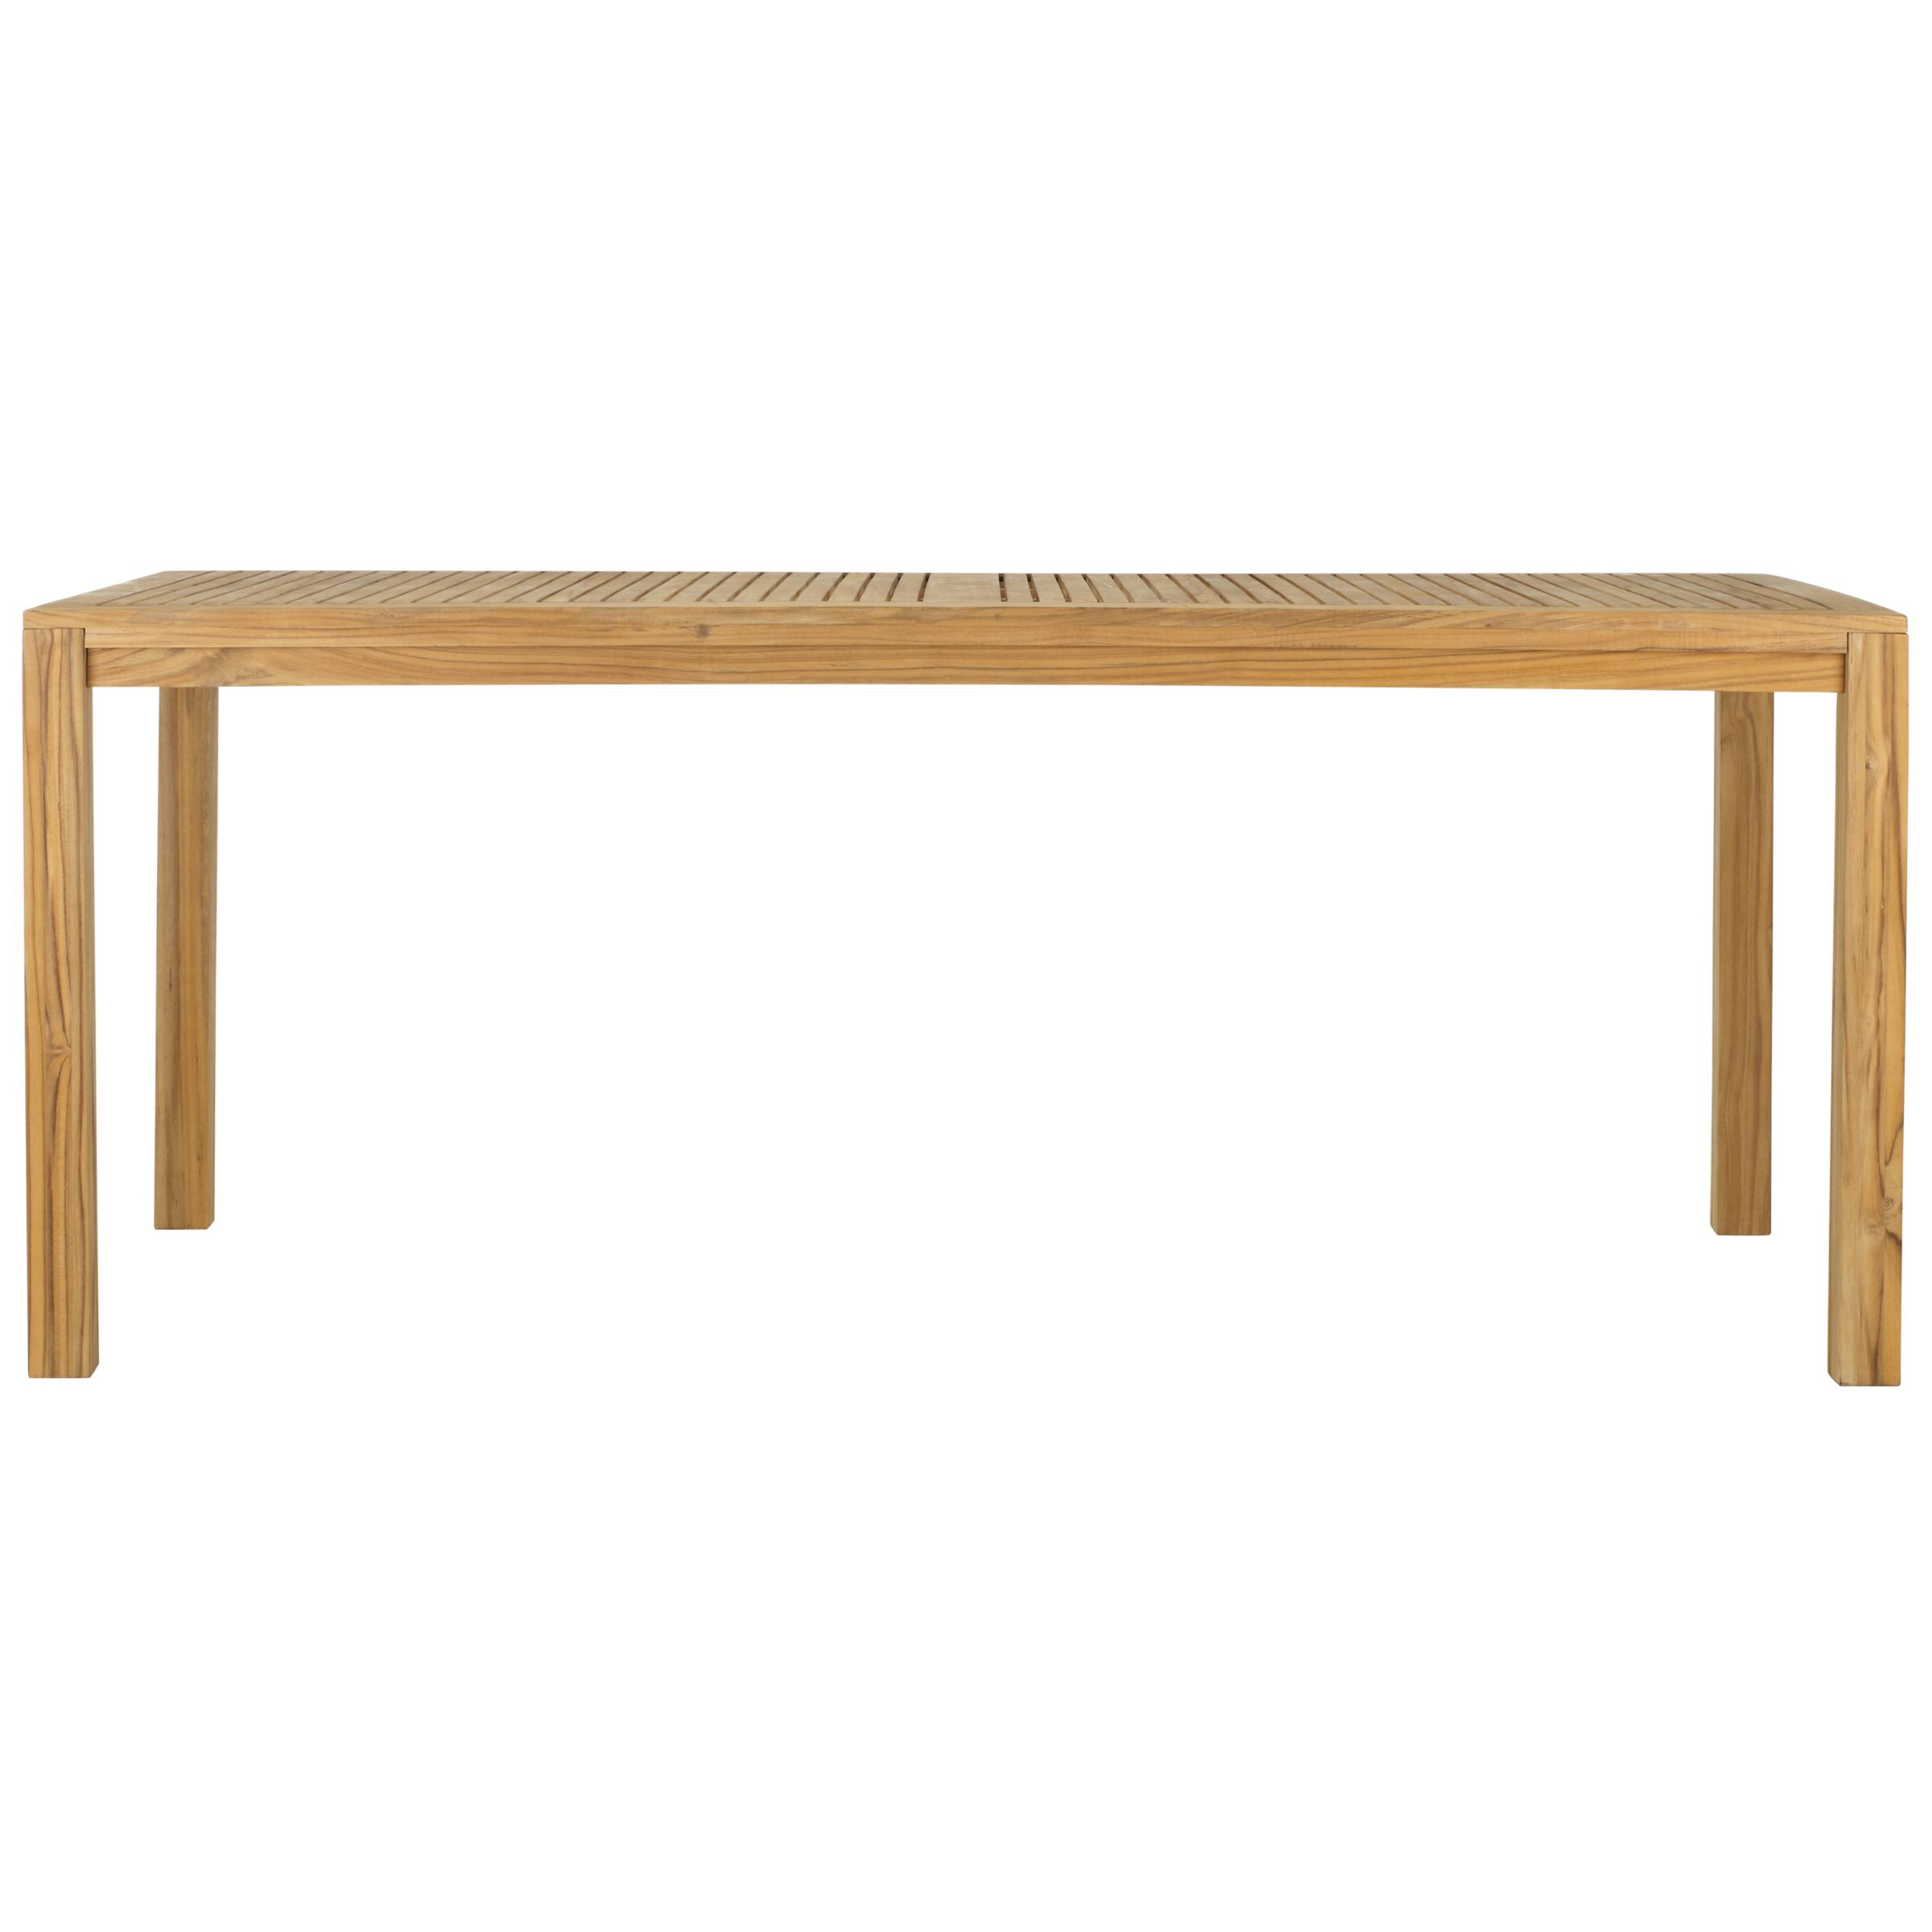 John Lewis Cortona Outdoor Dining Table